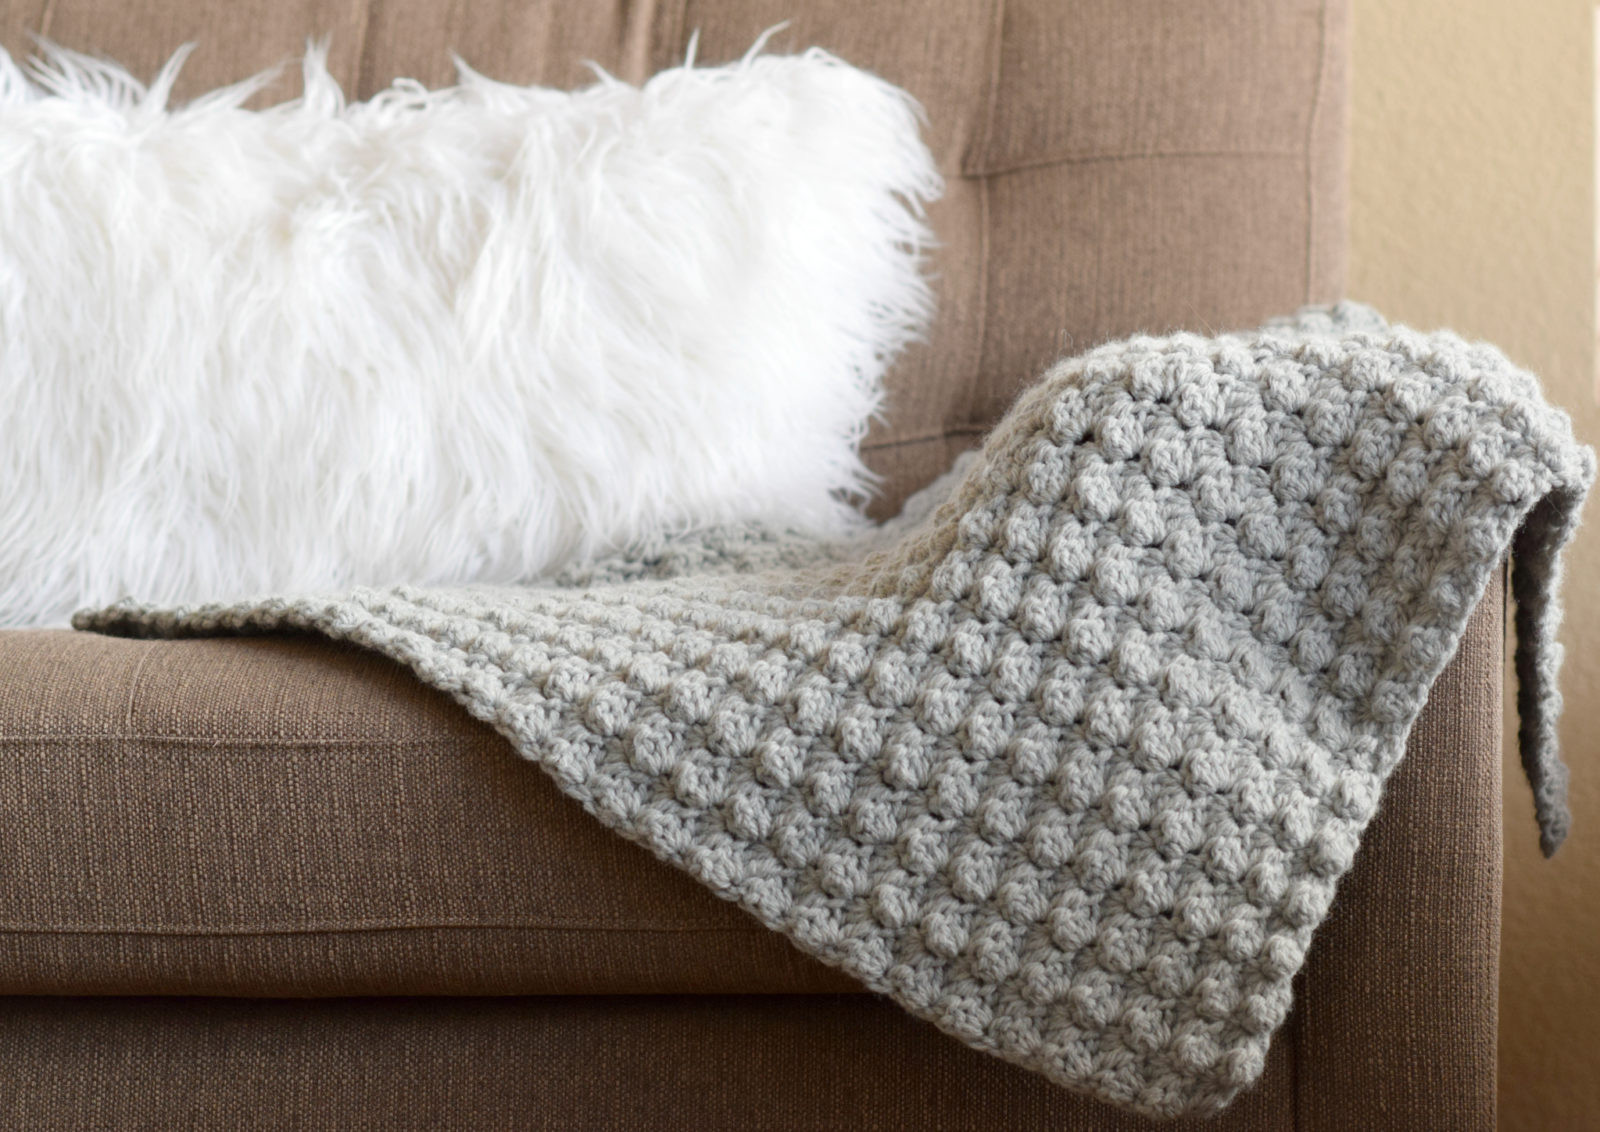 Crochet Throws Patterns Elegant Simple Crocheted Blanket Go to Pattern – Mama In A Stitch Of Wonderful 44 Images Crochet Throws Patterns